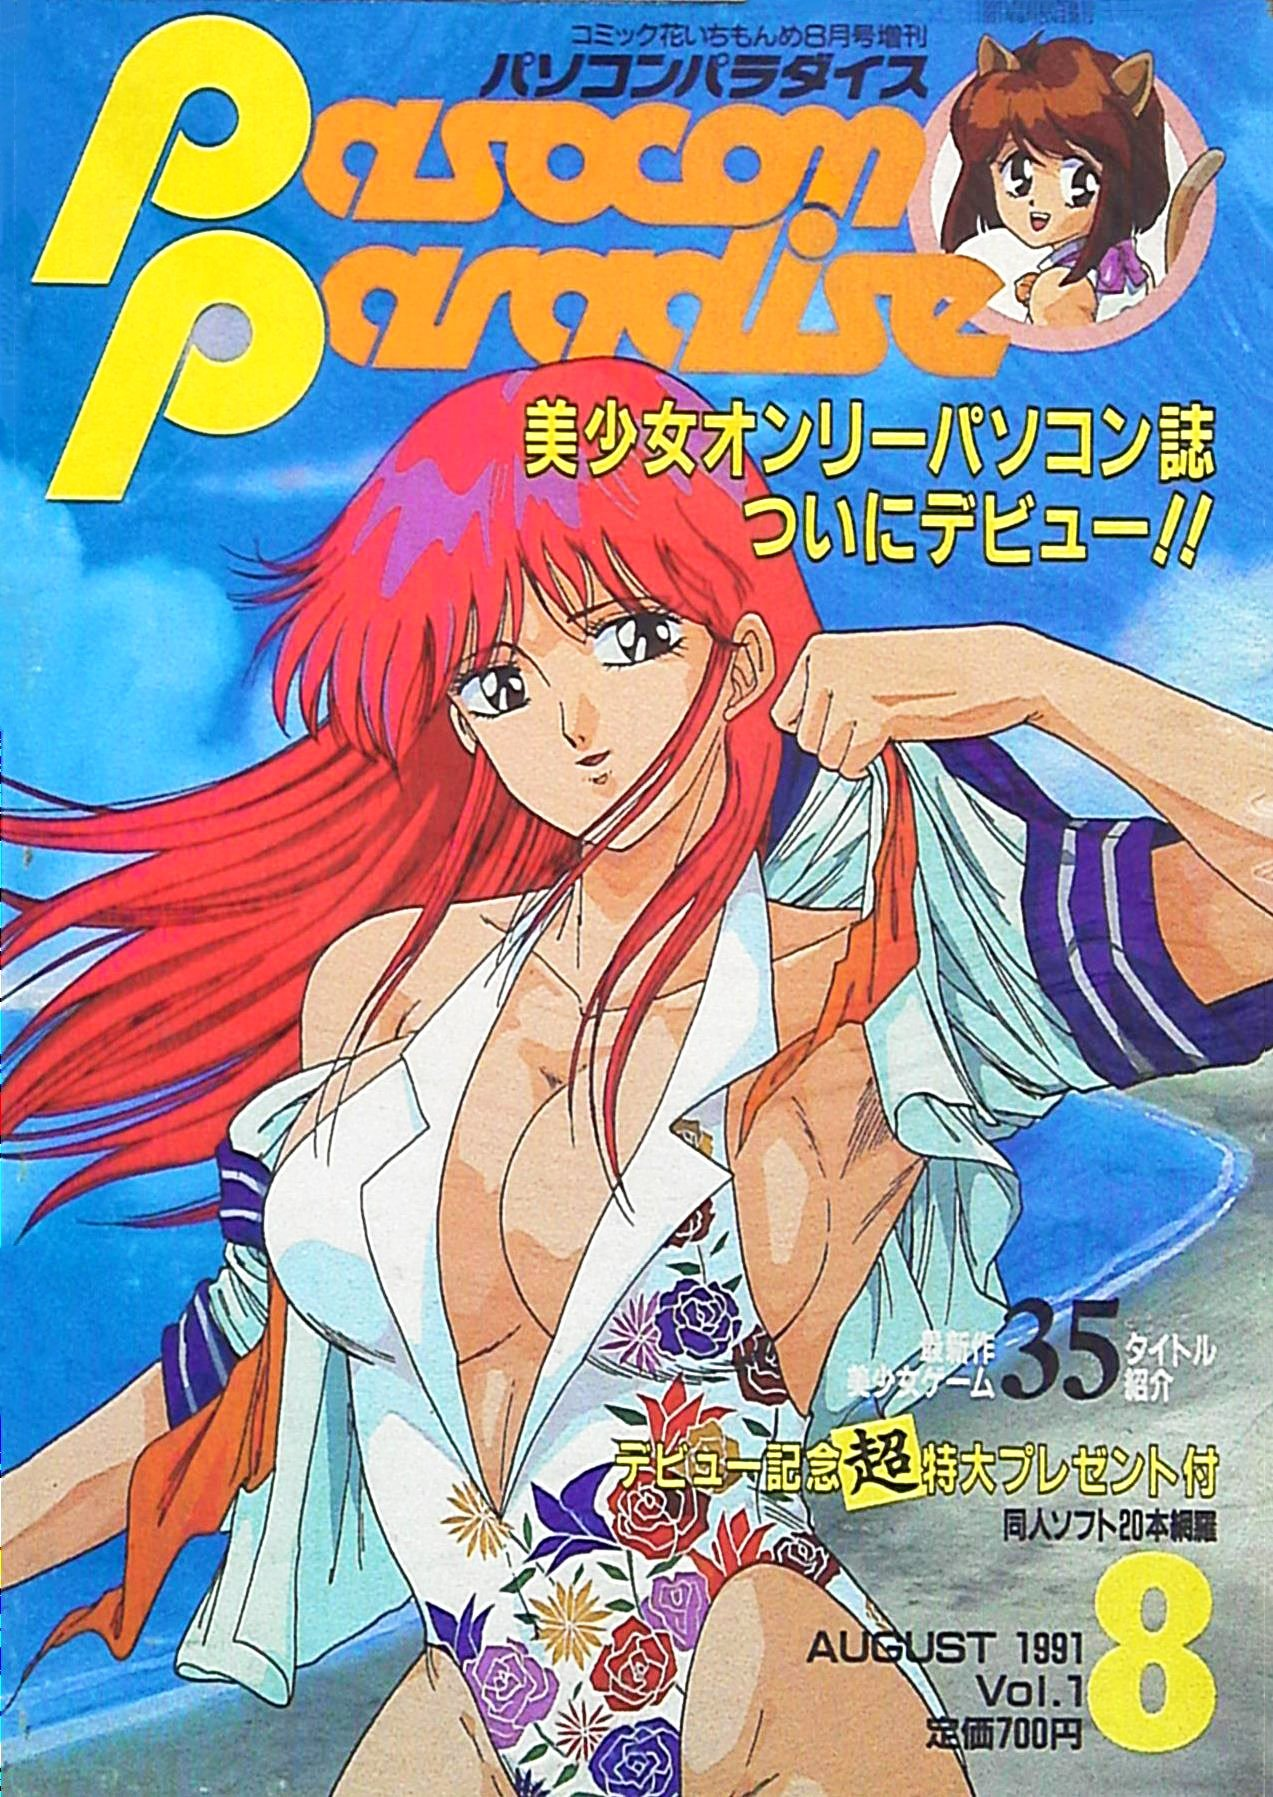 Pasocom Paradise Vol.001 (August 1991)